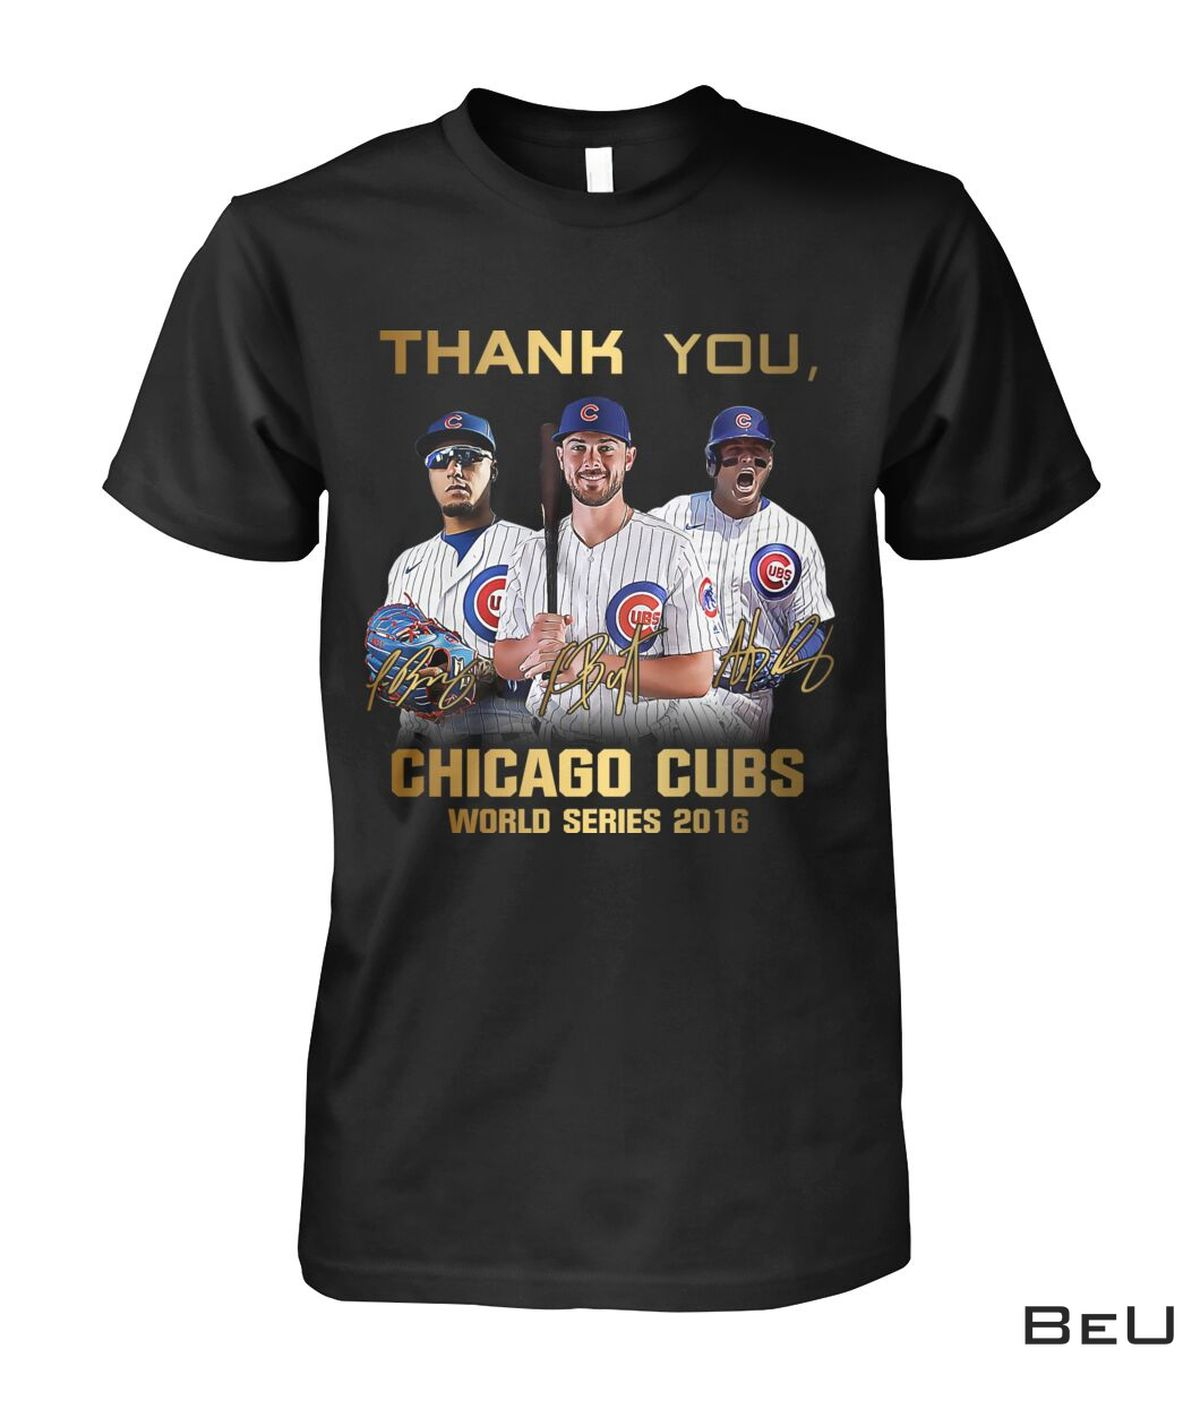 Thank You Chicago Cubs World Series 2016 Player Signatures Shirt, hoodie, tank top